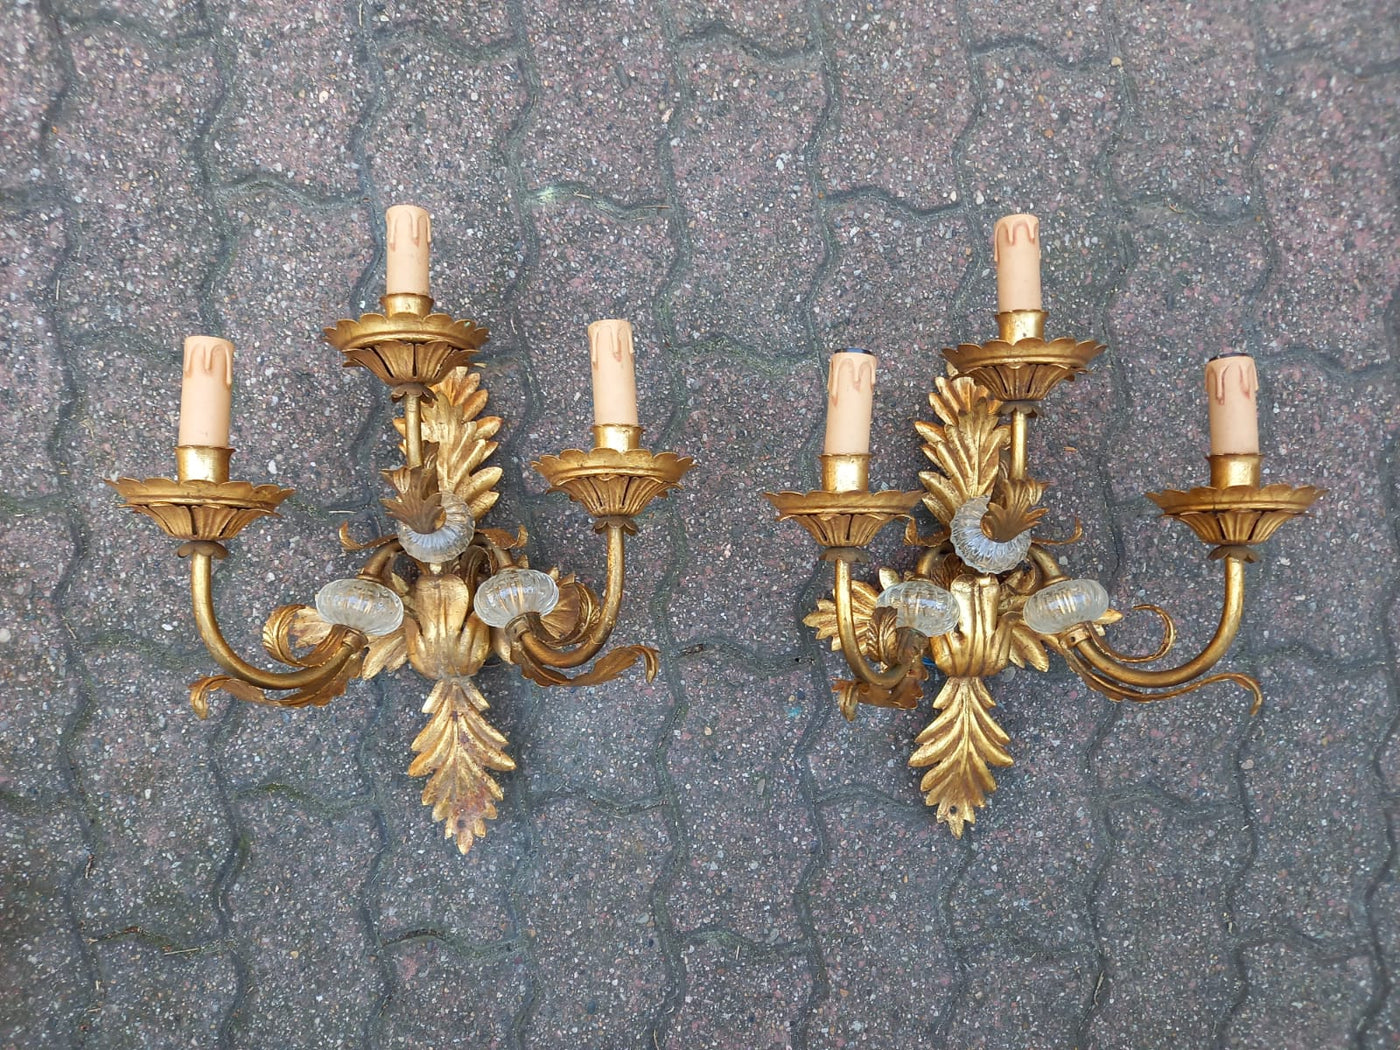 #7009-UGGG - Pair of Sconces